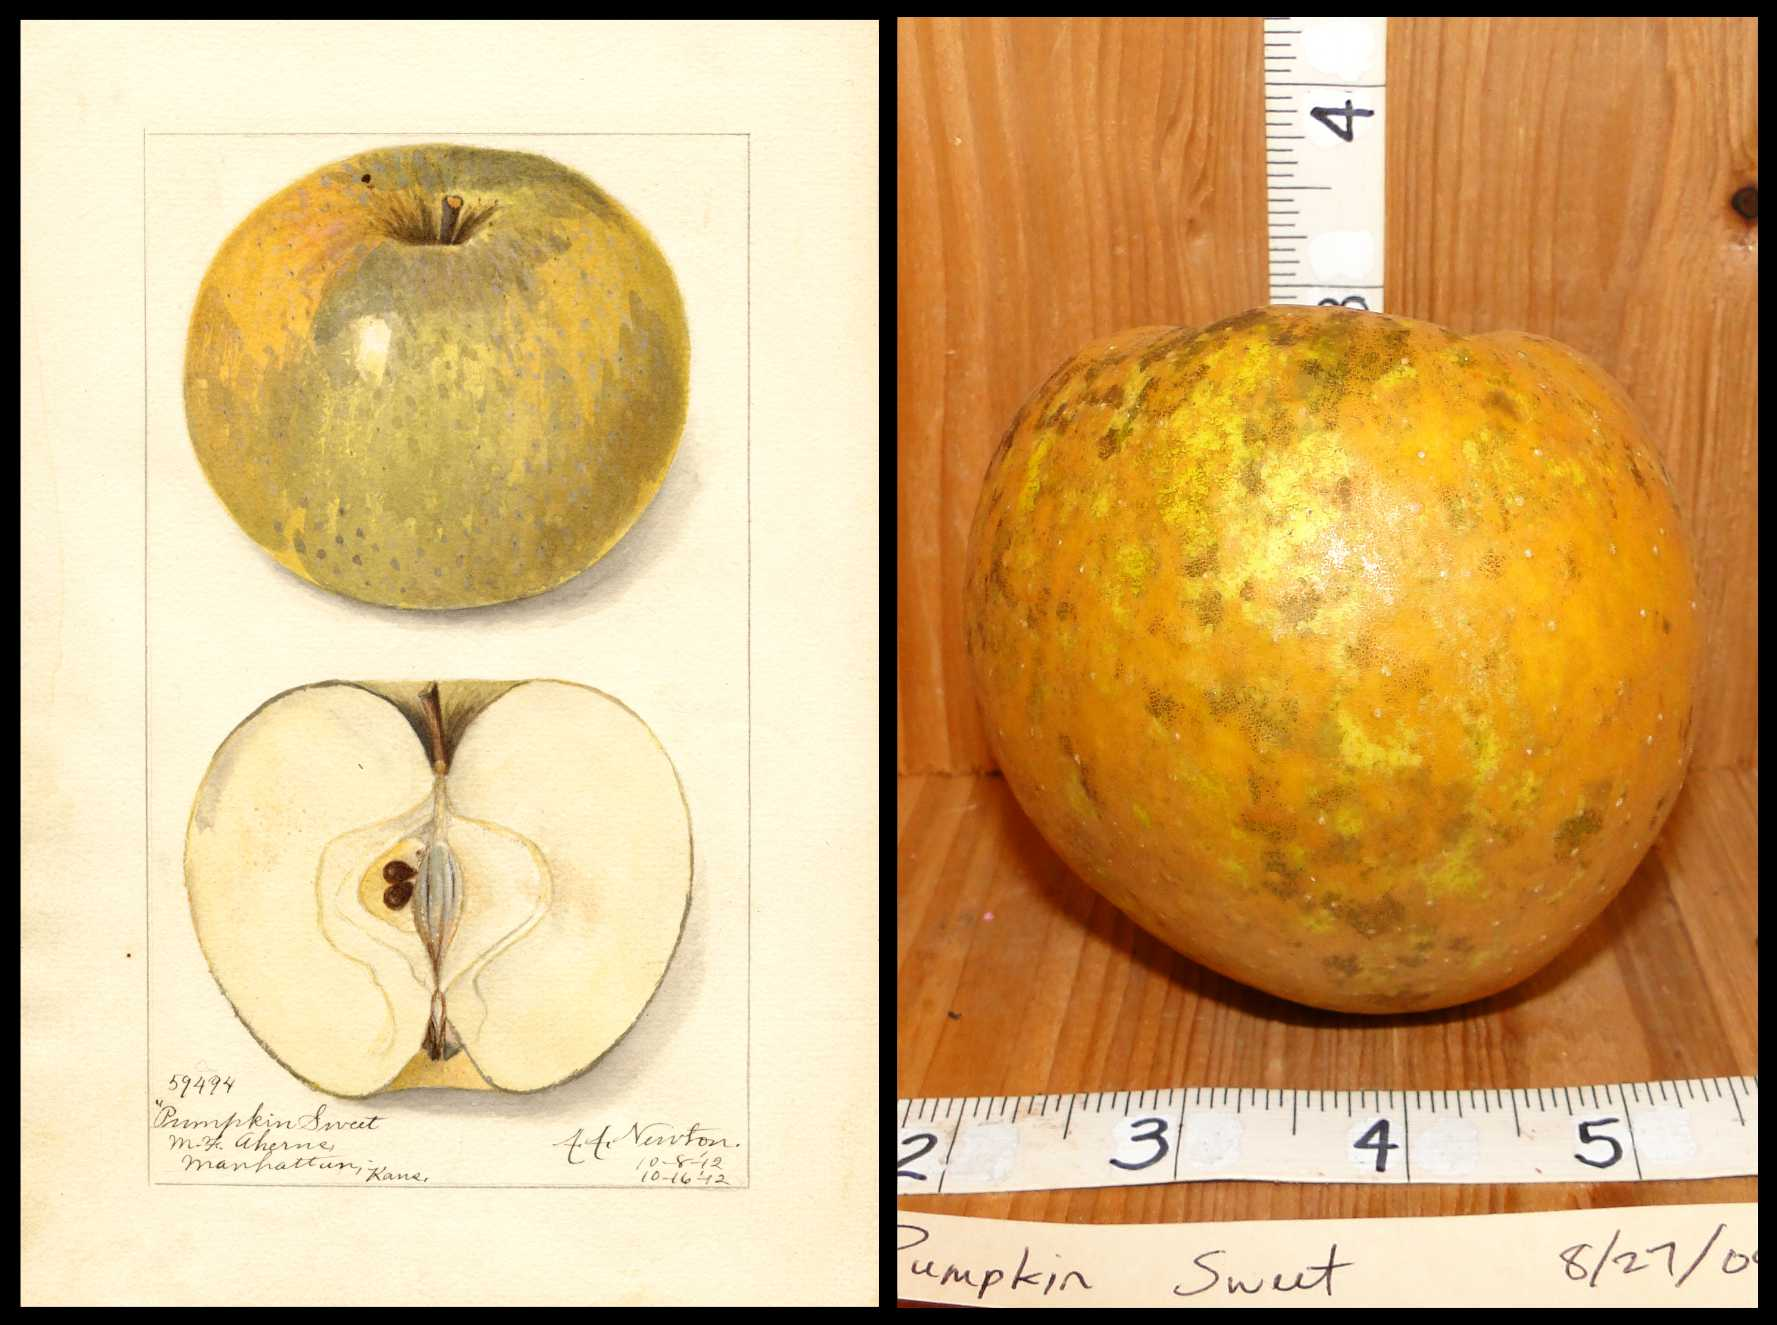 apple mottled yellow and rough tan